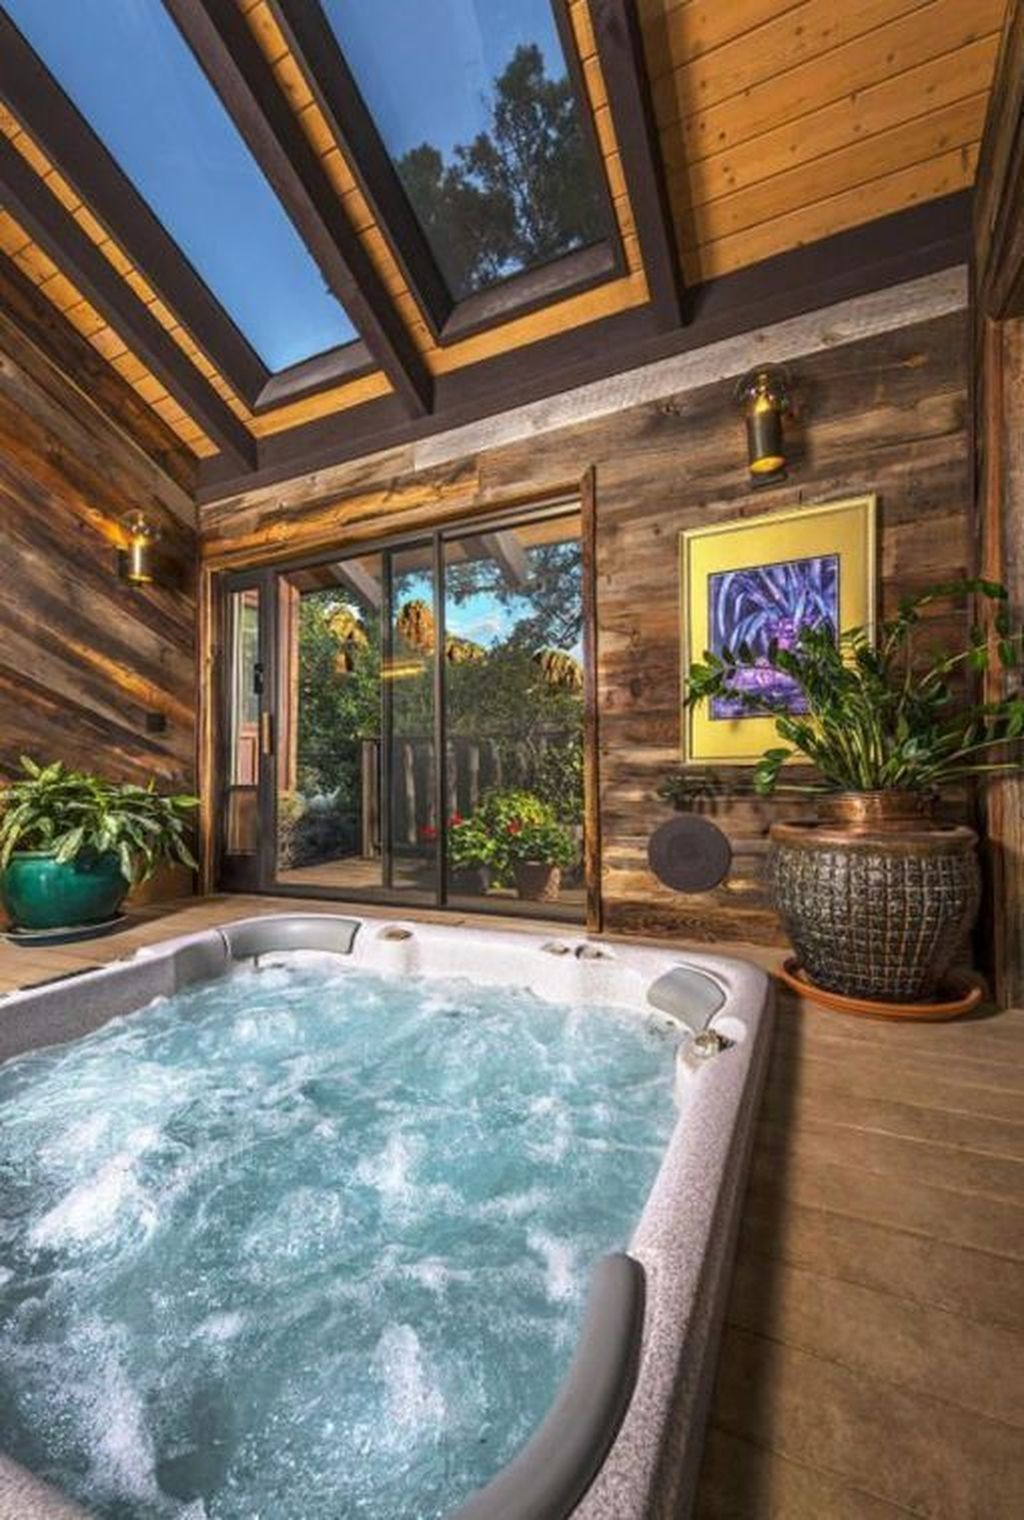 30 Best Ideas For Indoor Swimming Pool Ideas Small Indoor Pool Indoor Hot Tub Indoor Pool Design